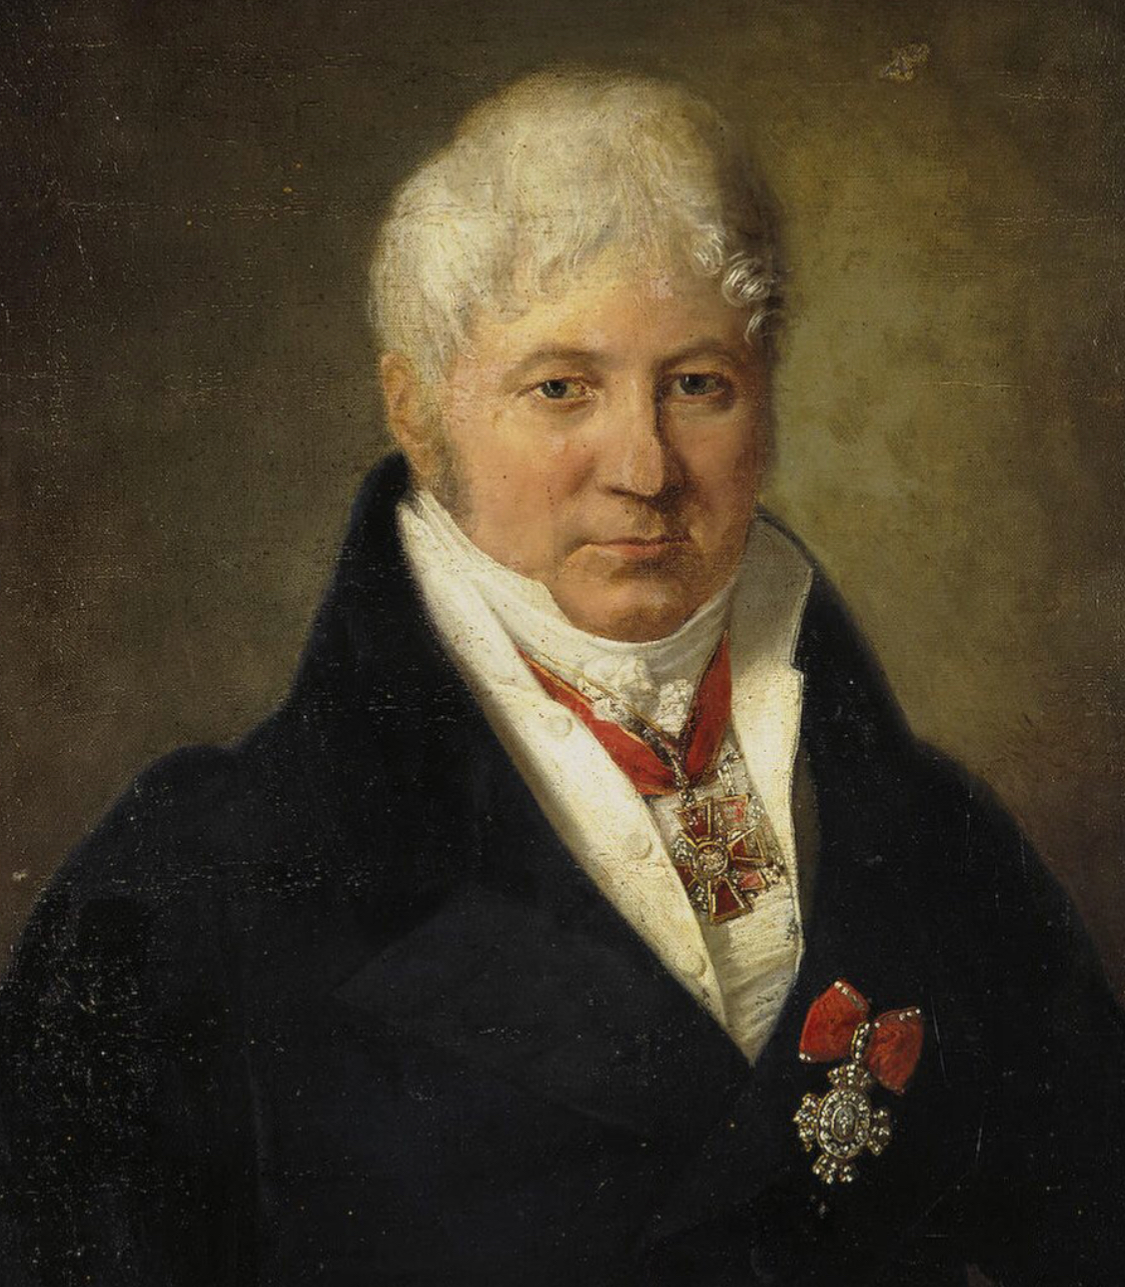 Unknown artist, Portrait of I.I. Volkov with the Badge of the Order of St Catherine, ca. 1835, collection of the state hermitage museum, St. Petersbrug